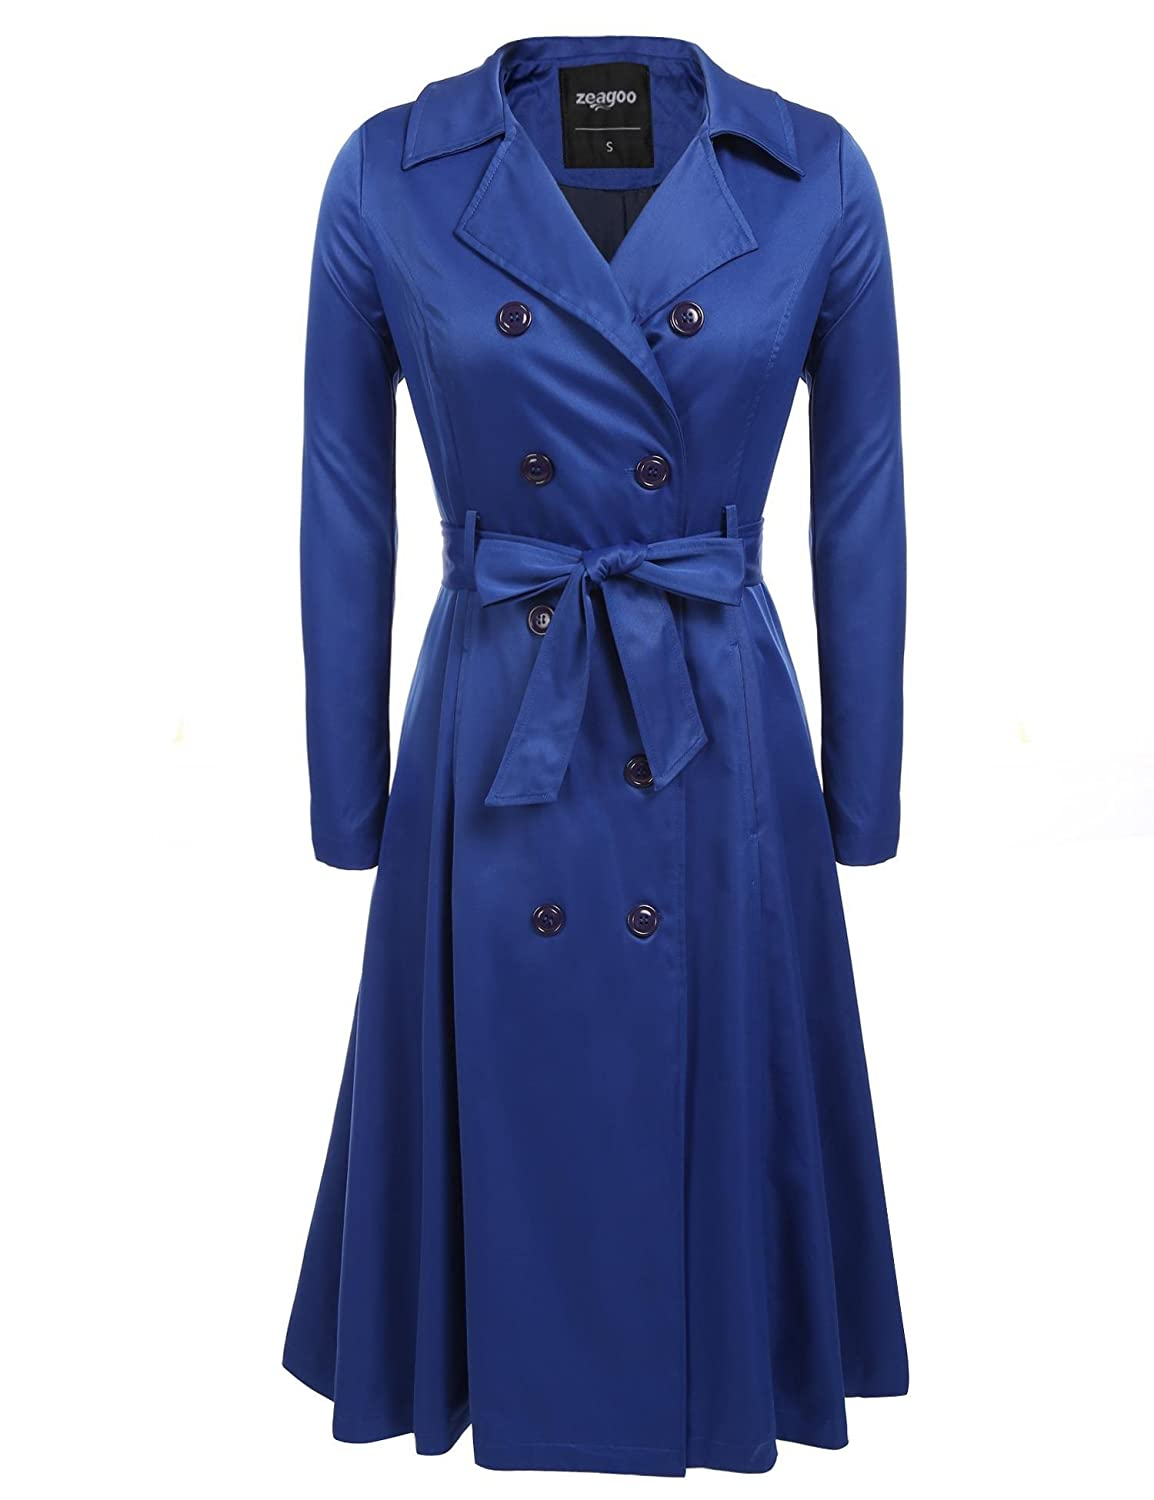 1950s Jackets, Coats, Bolero | Swing, Pin Up, Rockabilly Zeagoo Womens Double-Breasted Long Trench Coat with Belt $59.88 AT vintagedancer.com